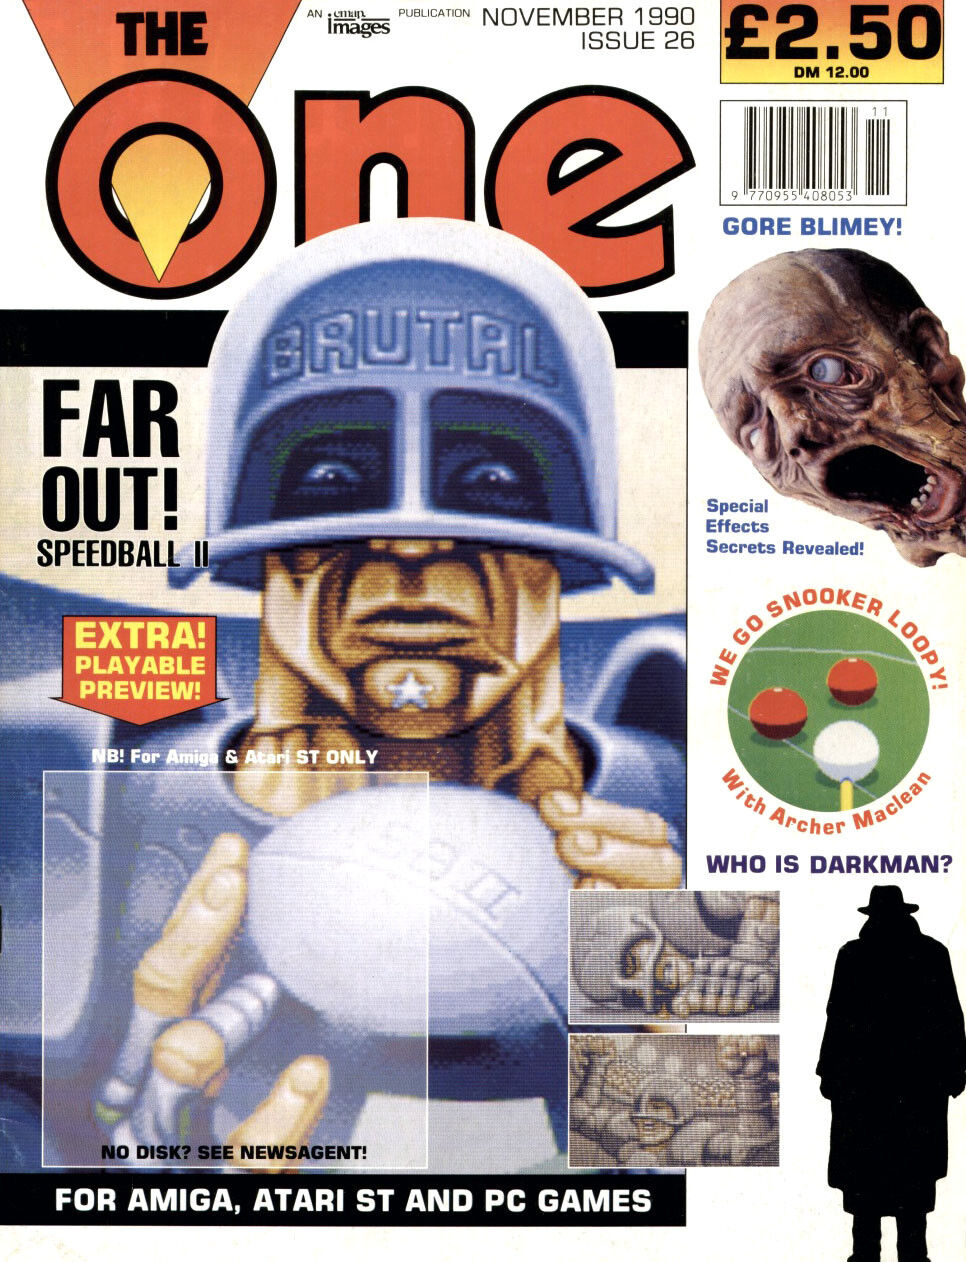 A competition in the magazine The One was the perfect incentive to finish the creation of a complete game.